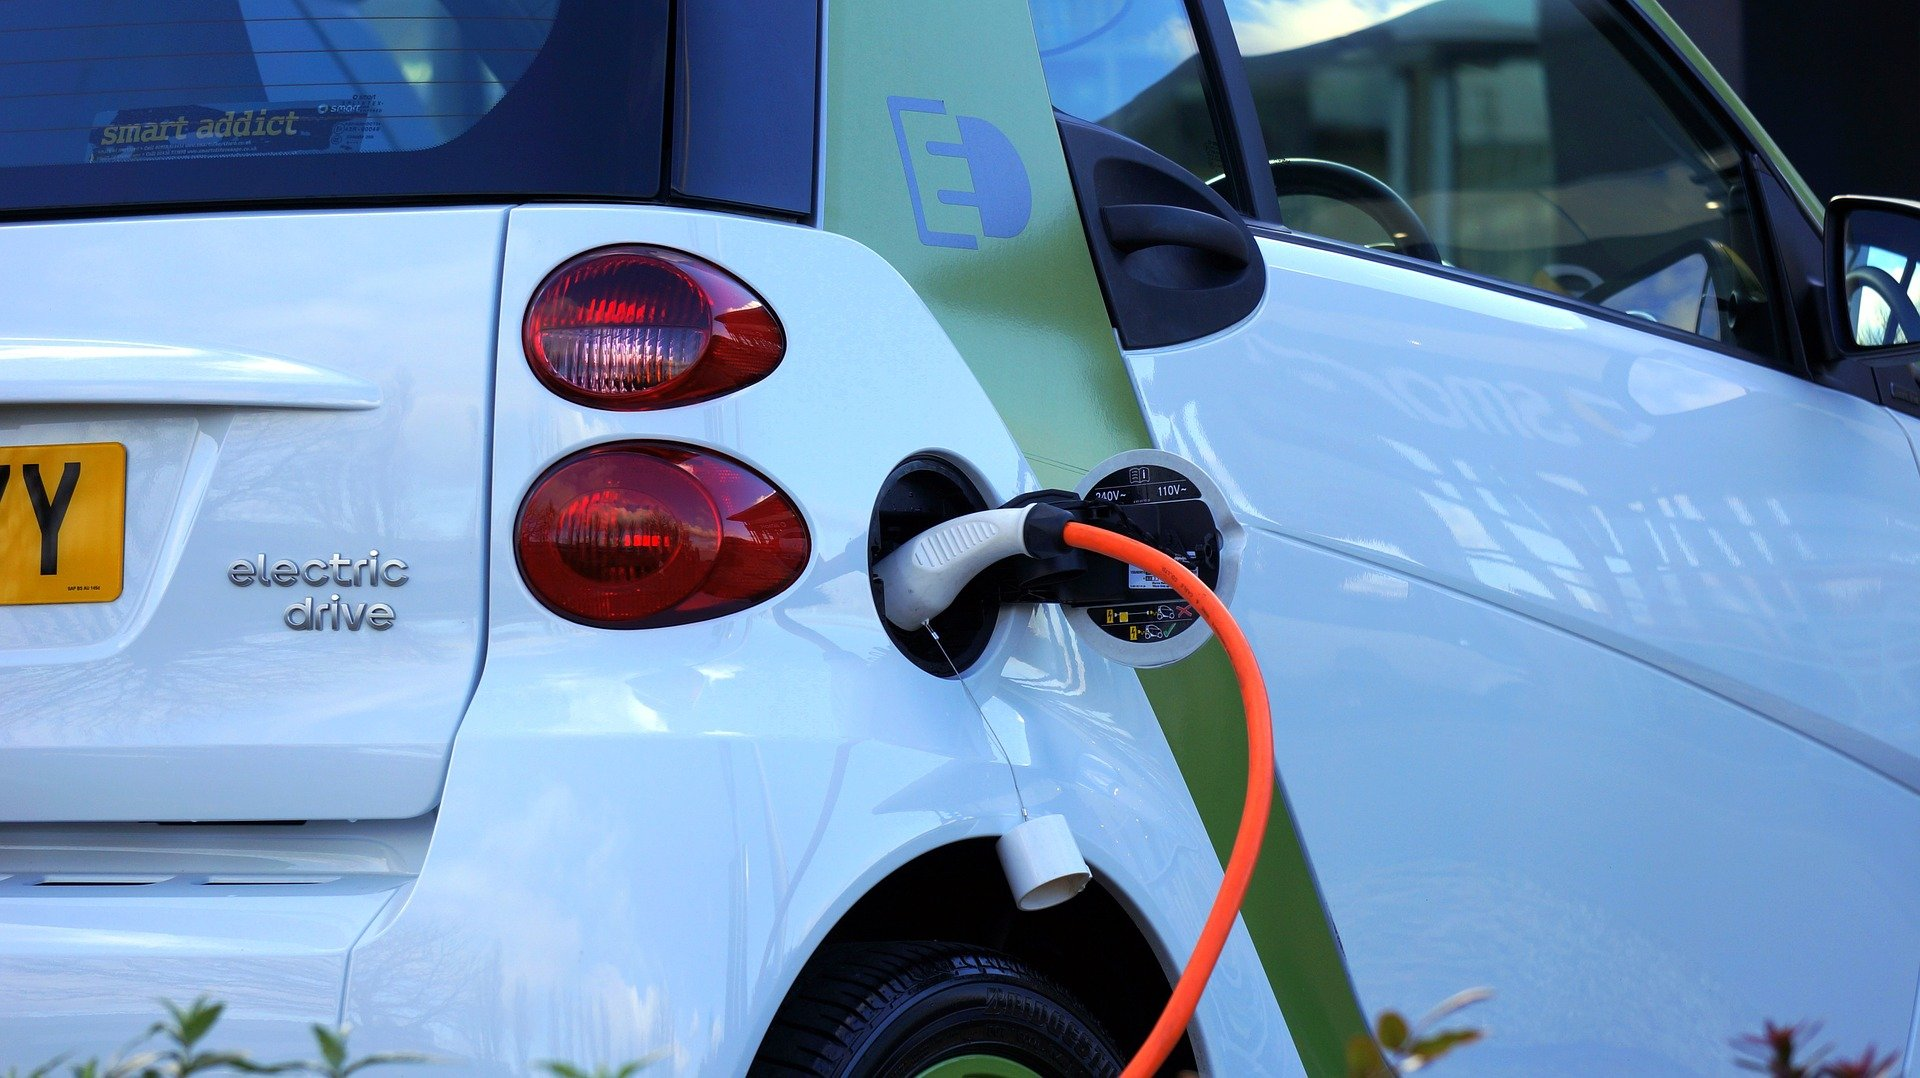 Your future car will be electric  - The development of electric vehicles